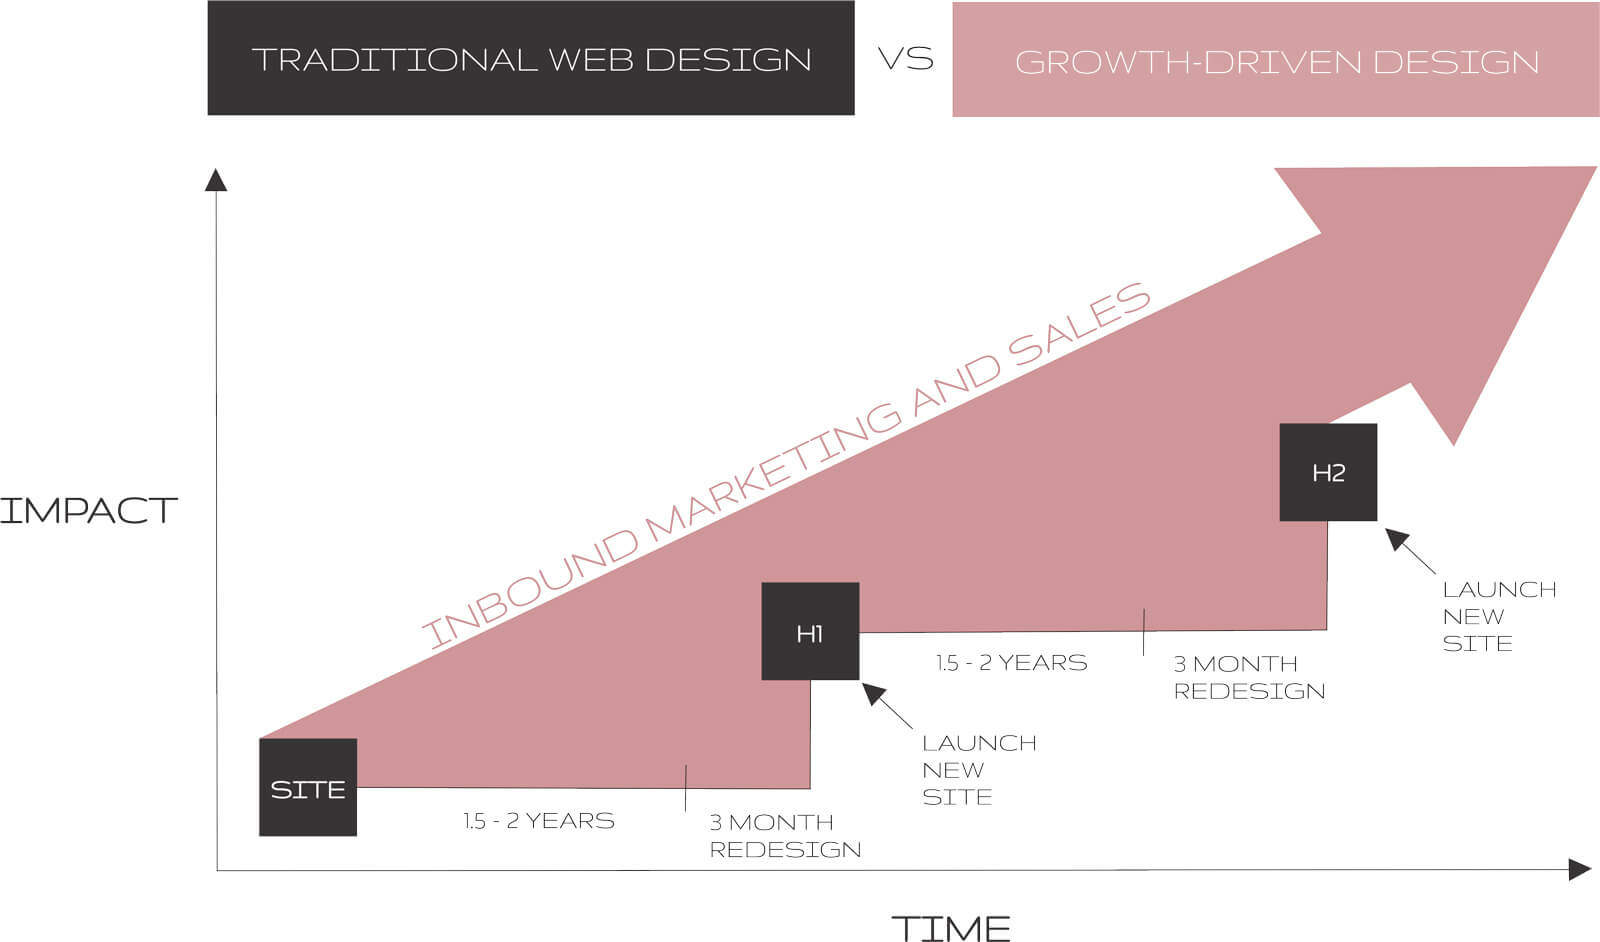 growth driven design vs traditional